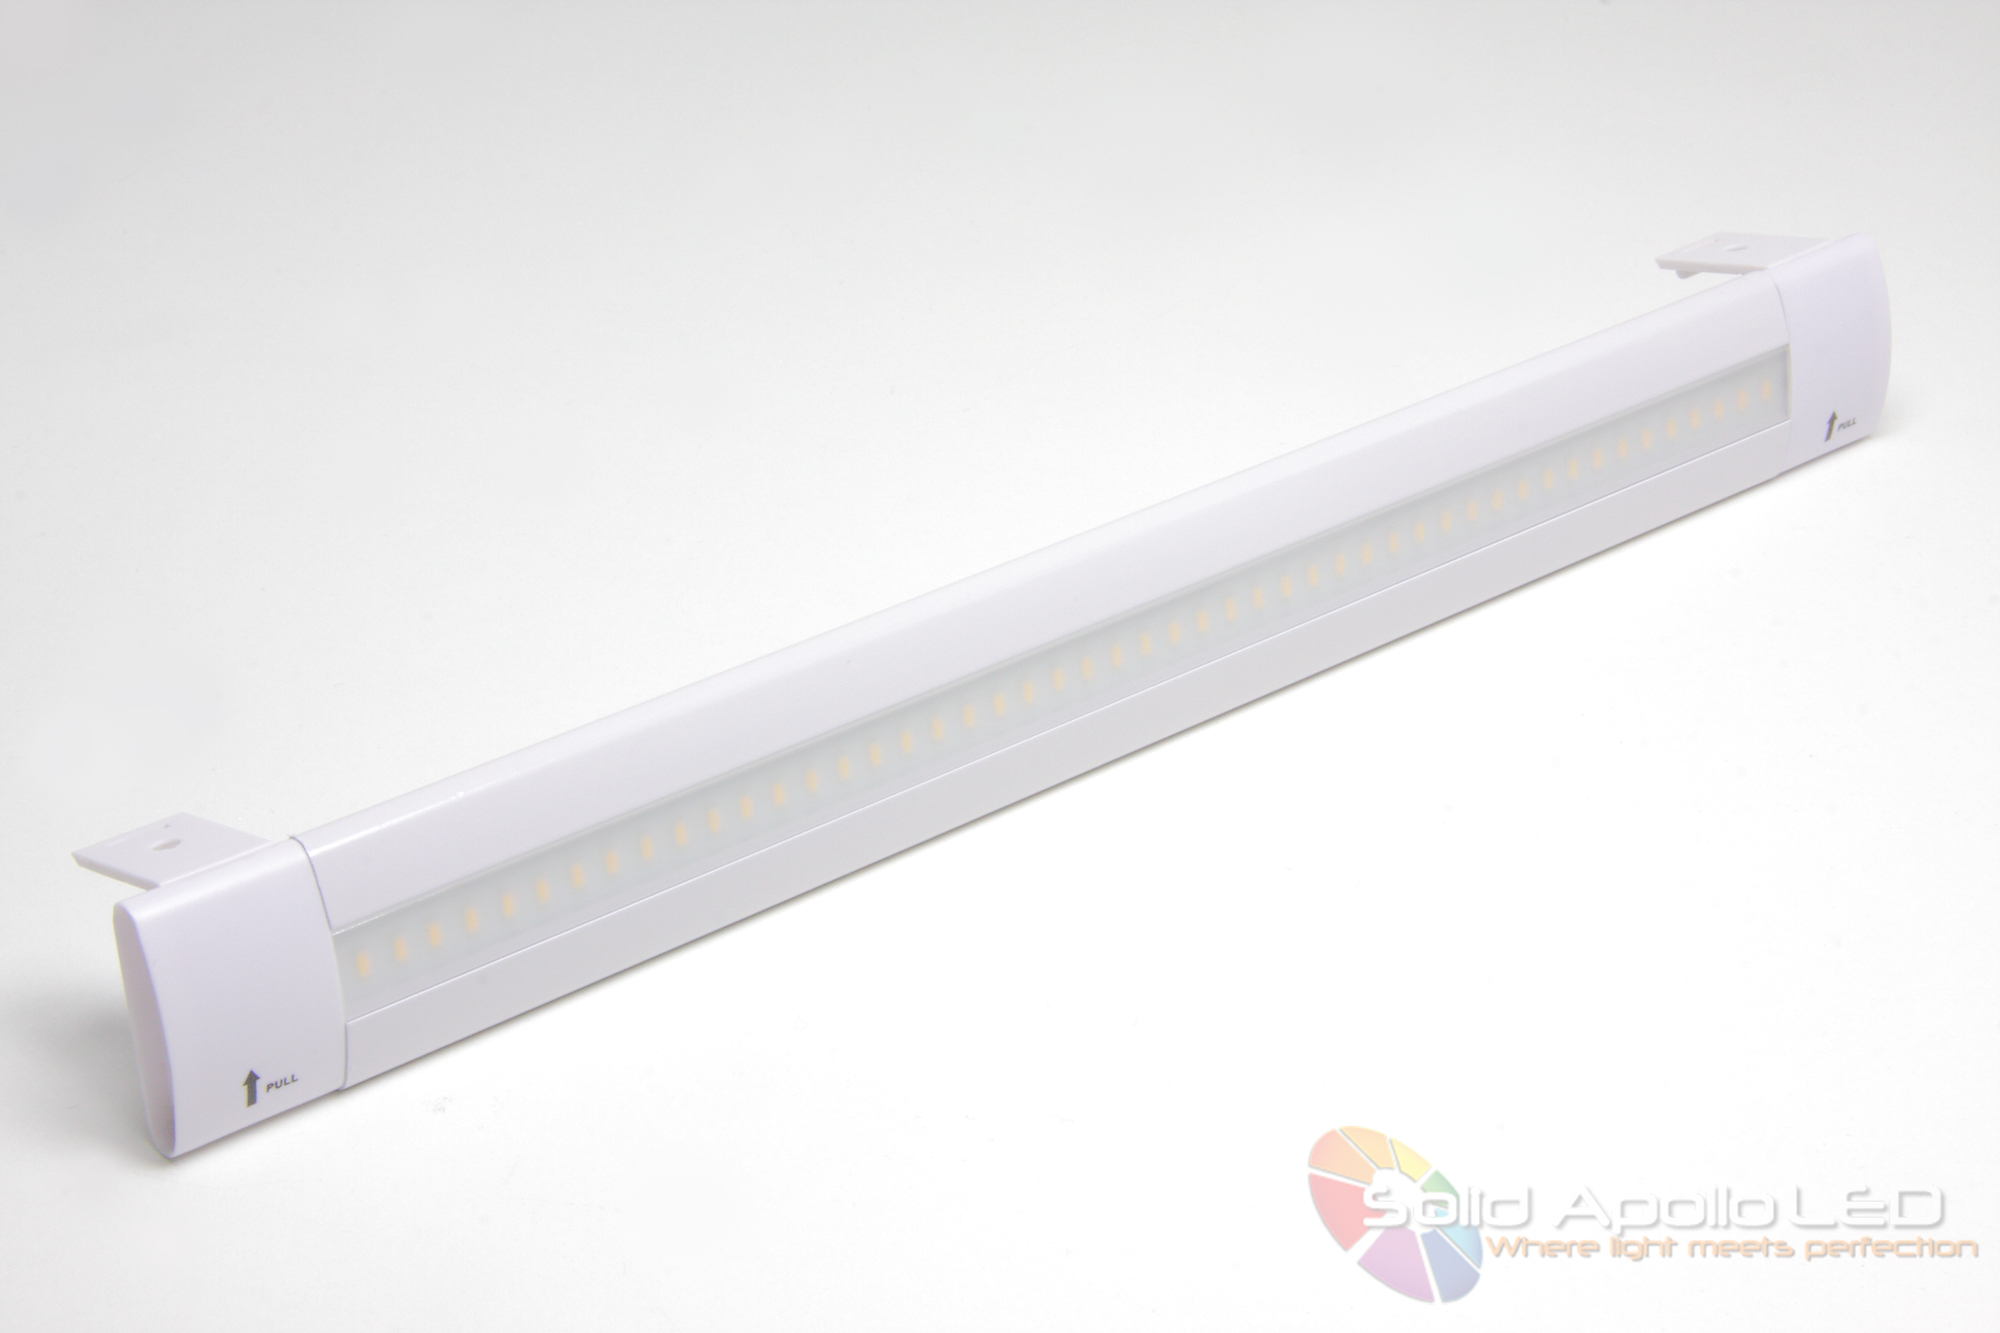 Solid Apollo Led Introduces Premium Led Light Bars With A